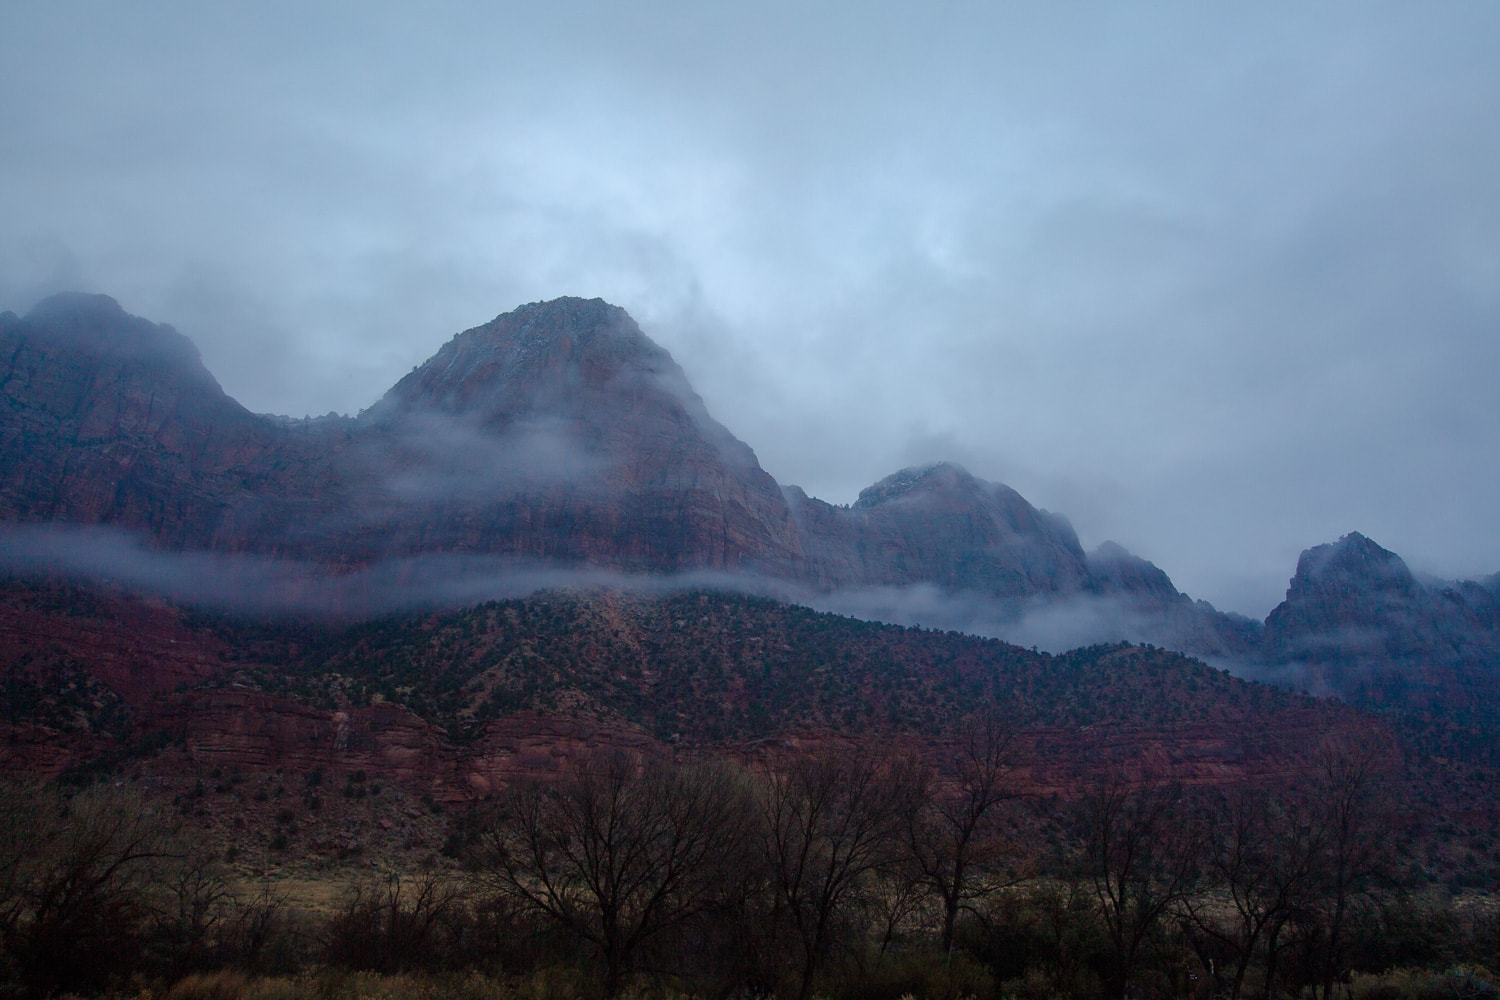 Misty morning mountains in Zion National Park